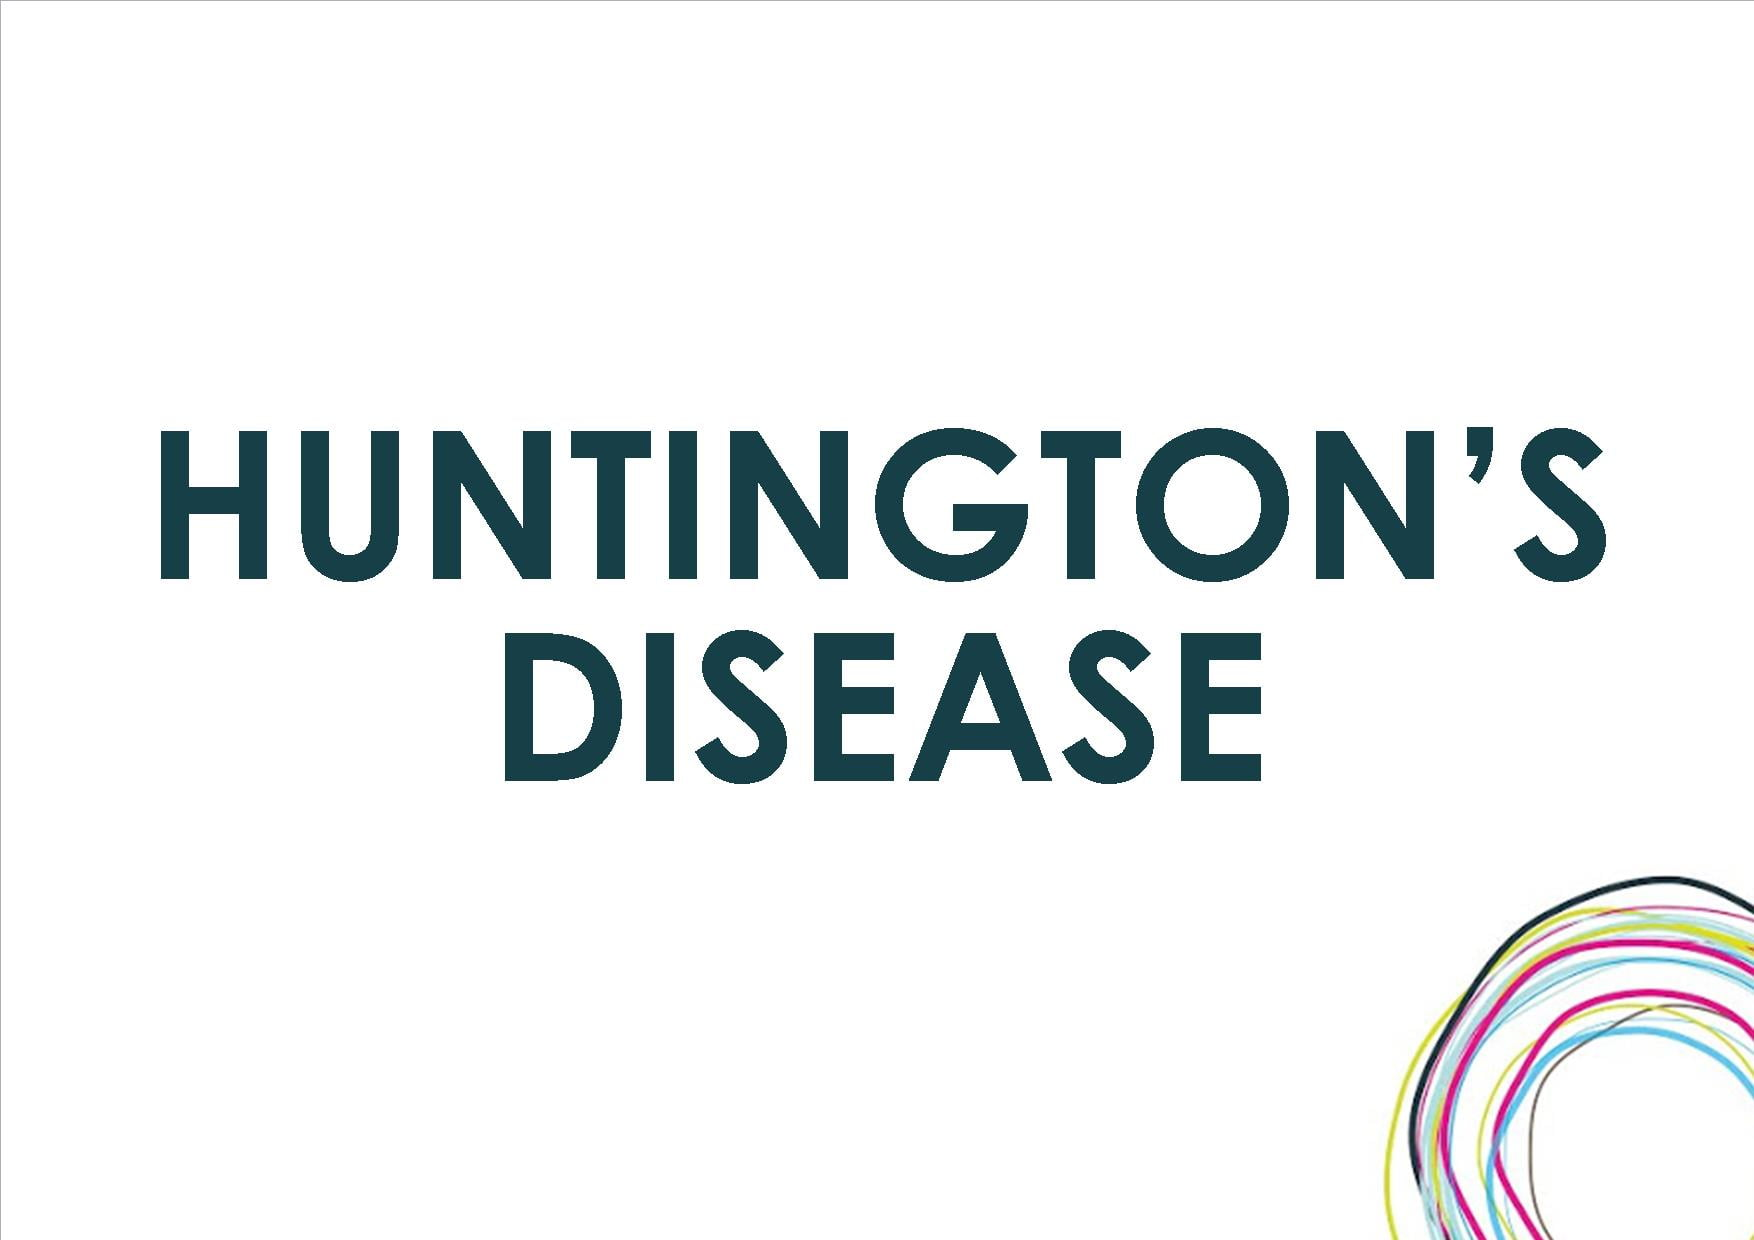 a study on the huntingtons disease Huntington disease (hd) is a progressive disorder of motor, cognitive, and psychiatric disturbances the mean age of onset is 35 to 44 years and the median survival time is 15 to 18 years after onset.